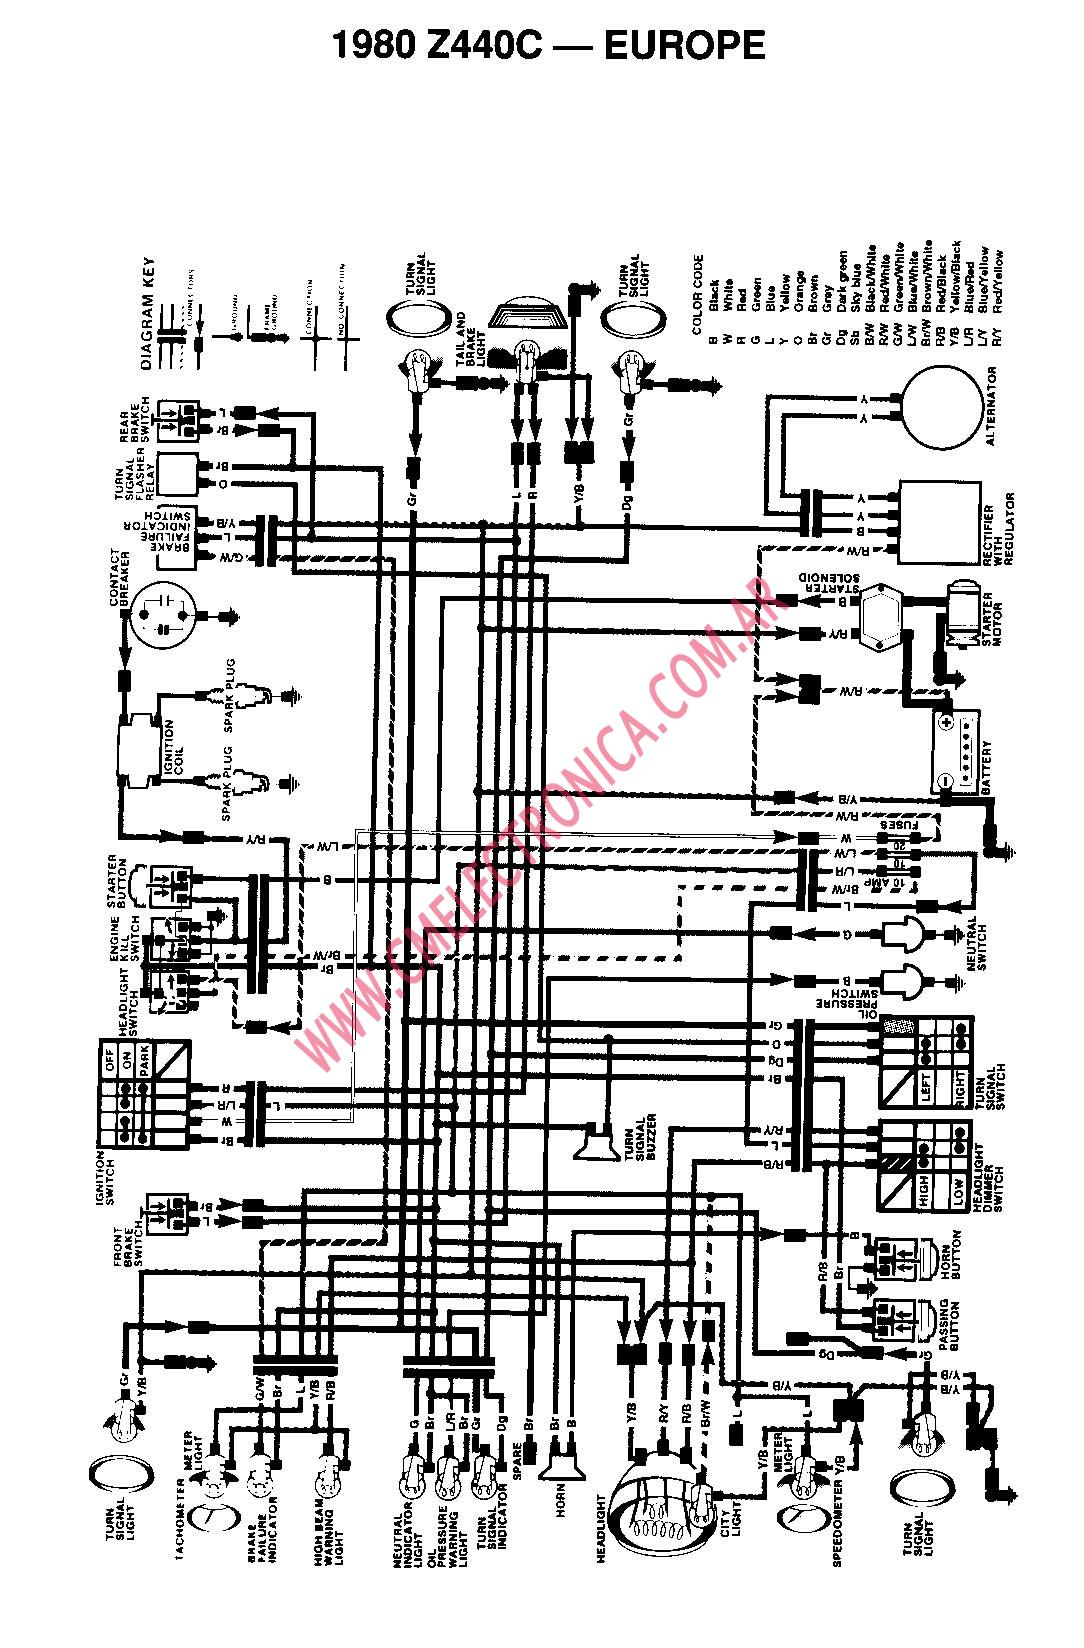 2005 Kawasaki Bayou 250 Wiring Diagram - 1997 Rav4 Engine Diagram -  schematics-source.citroen-wirings1.jeanjaures37.fr | 2005 Kawasaki Bayou Wiring Diagram |  | Wiring Diagram Resource